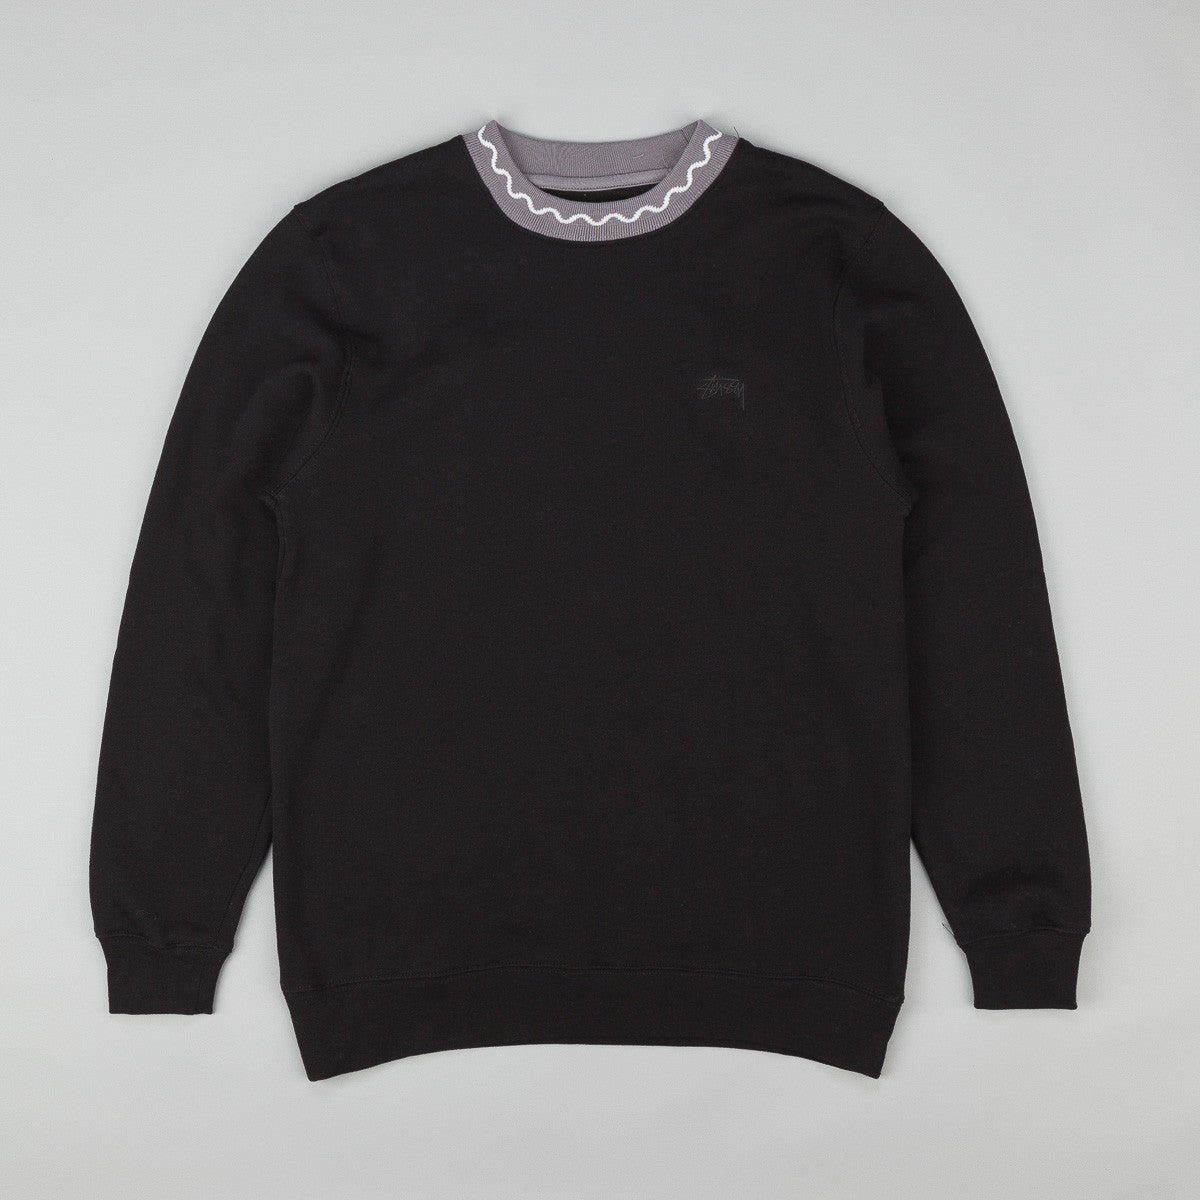 Stussy Crew Neck Jacquard Fleece Sweatshirt - Black